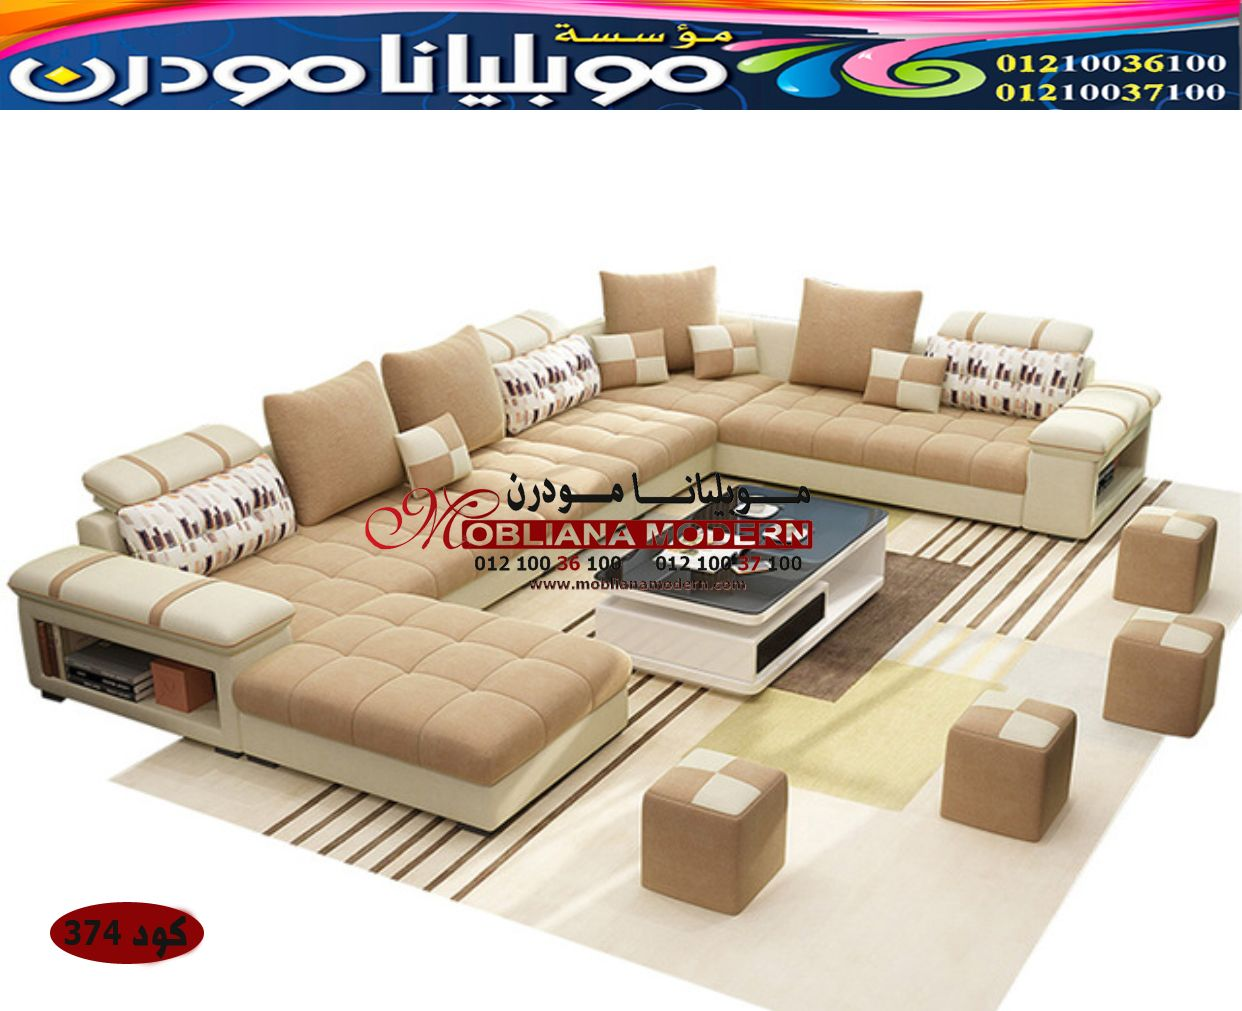 احدث صور الركنات Modern Furniture Sameh In 2020 House Rooms Home Room Design Room Design